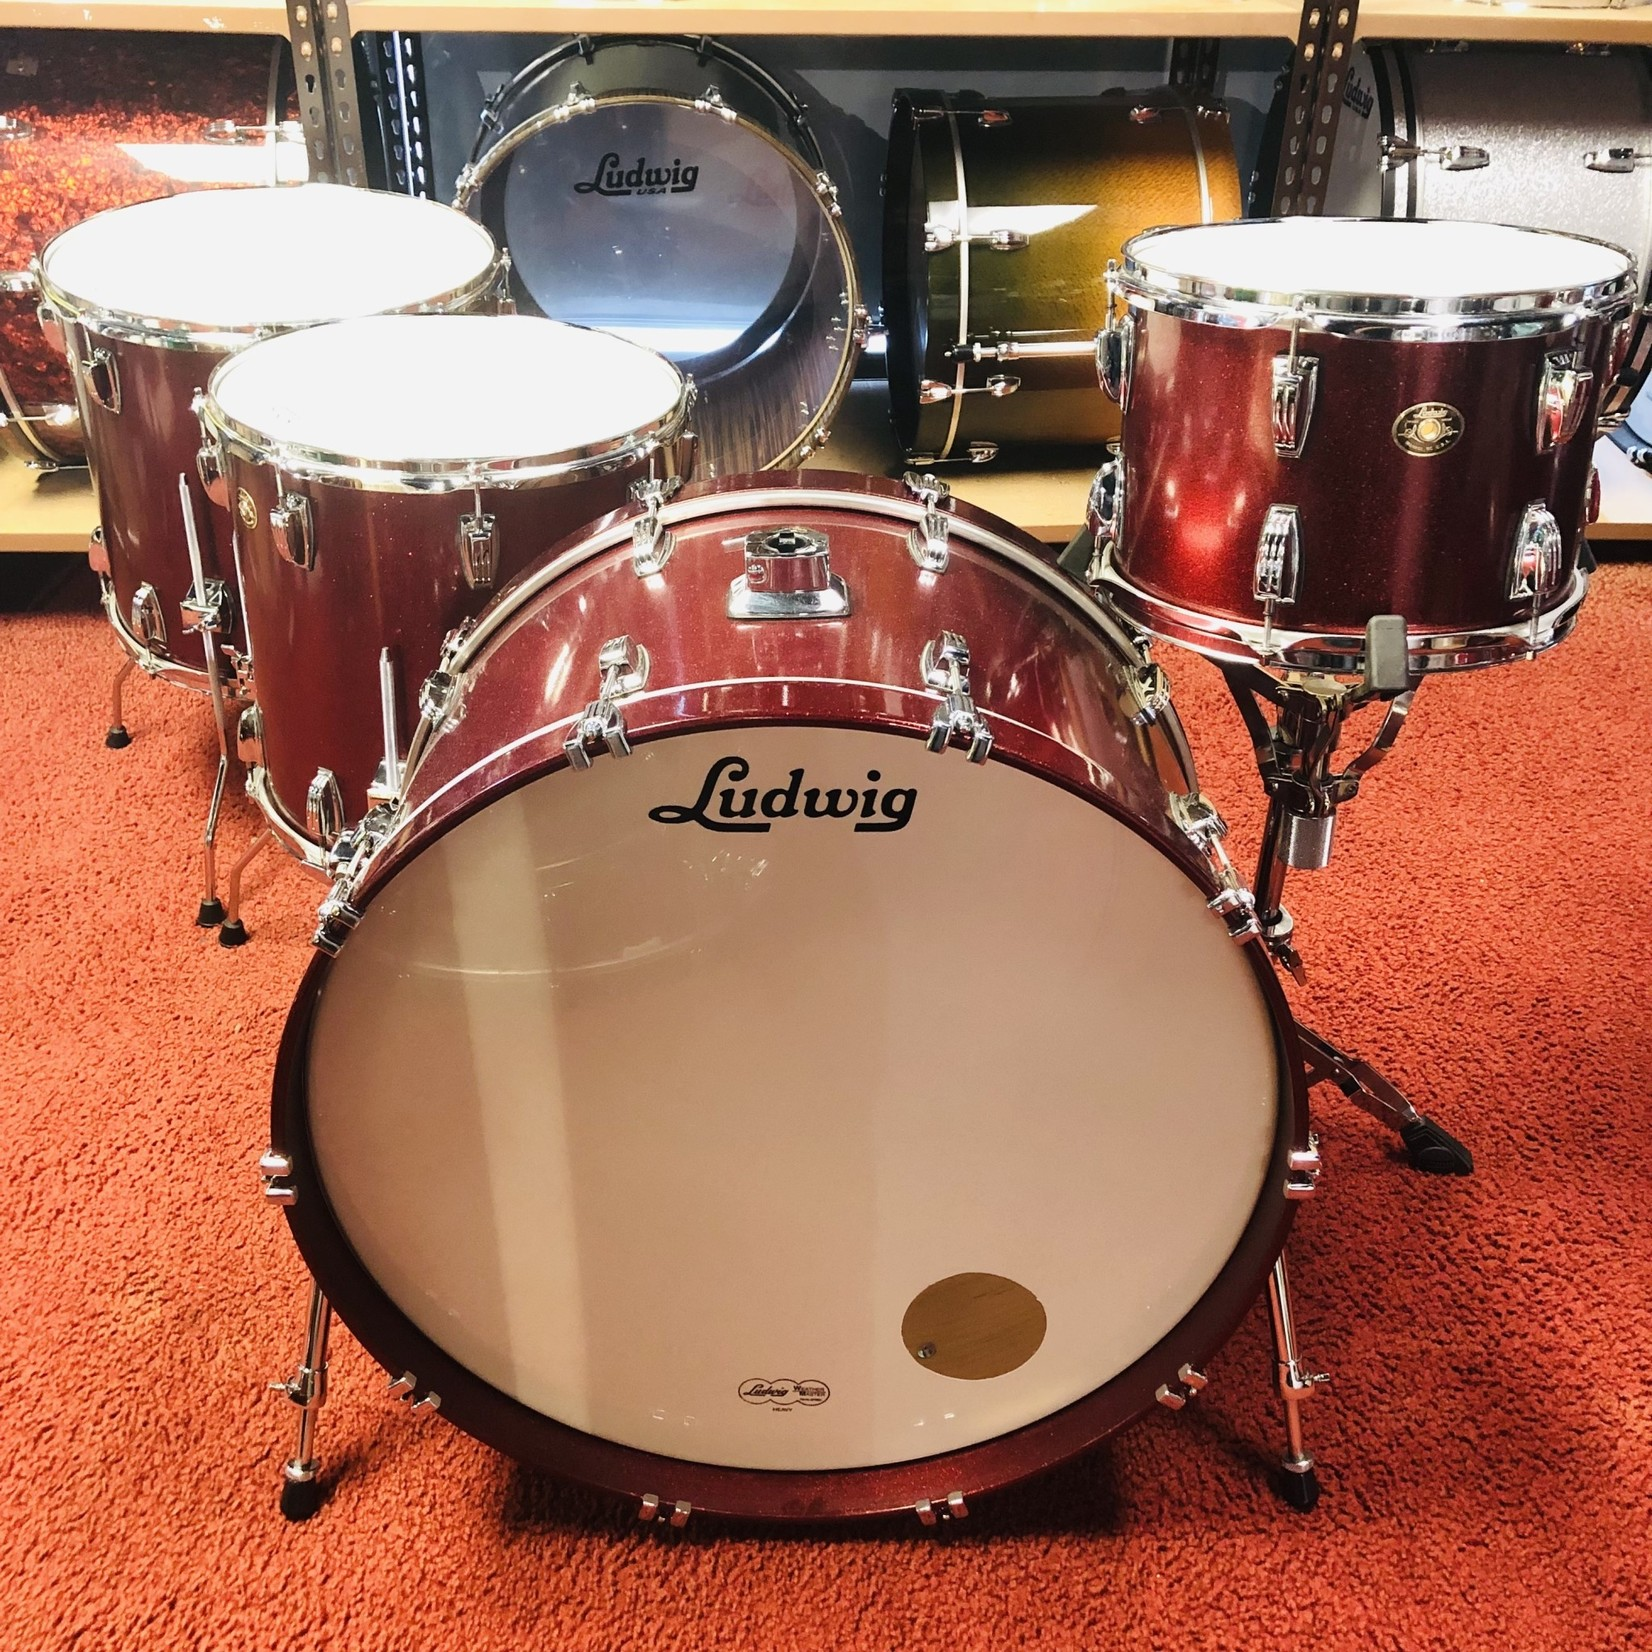 Ludwig LUDWIG CLASSIC MAPLE 4-PC SHELL PACK 13/16/18/26 (Ruby Glitter Lacquer)